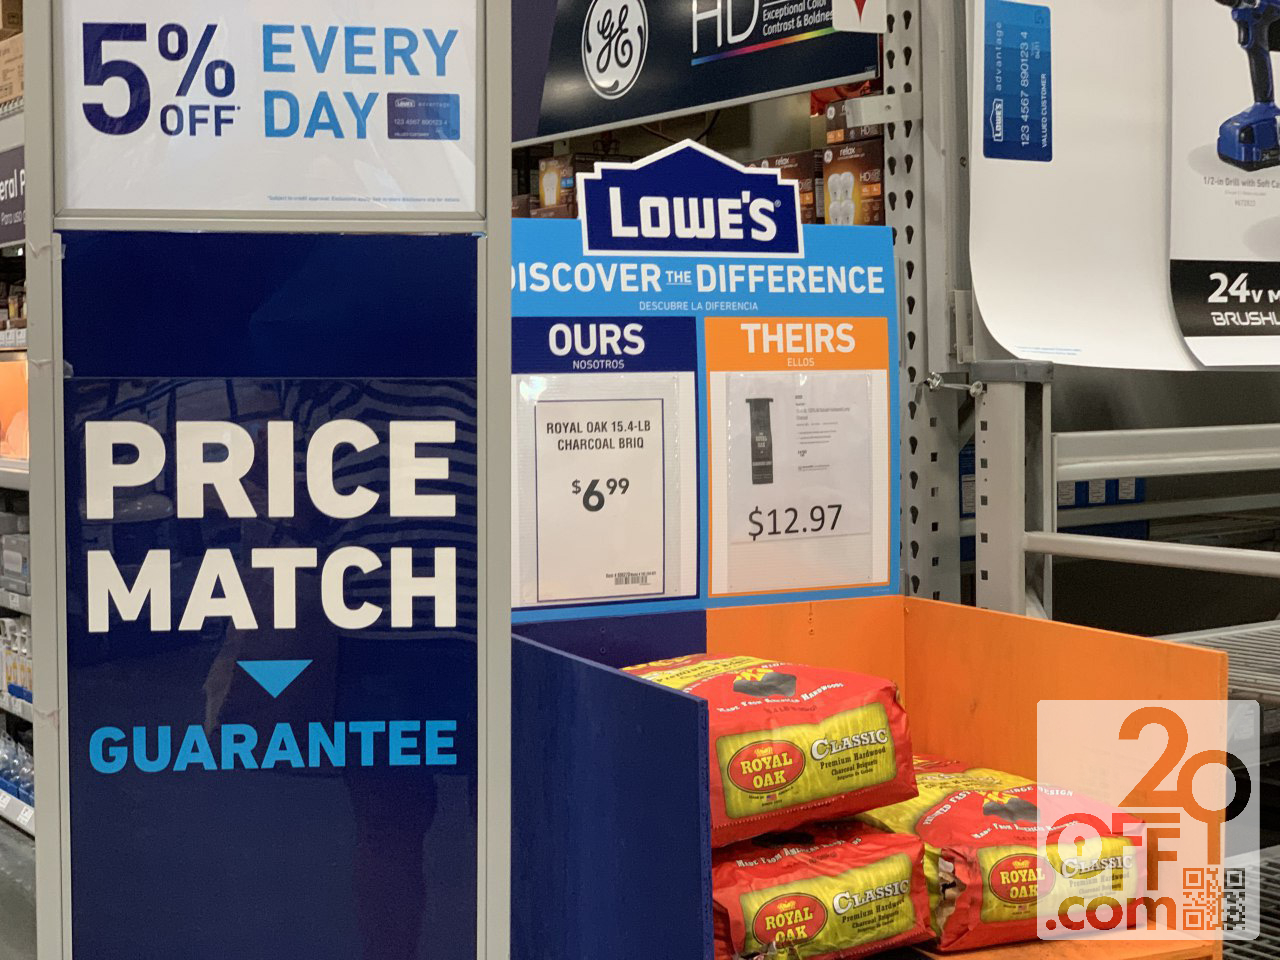 Lowes Price Match Guarantee